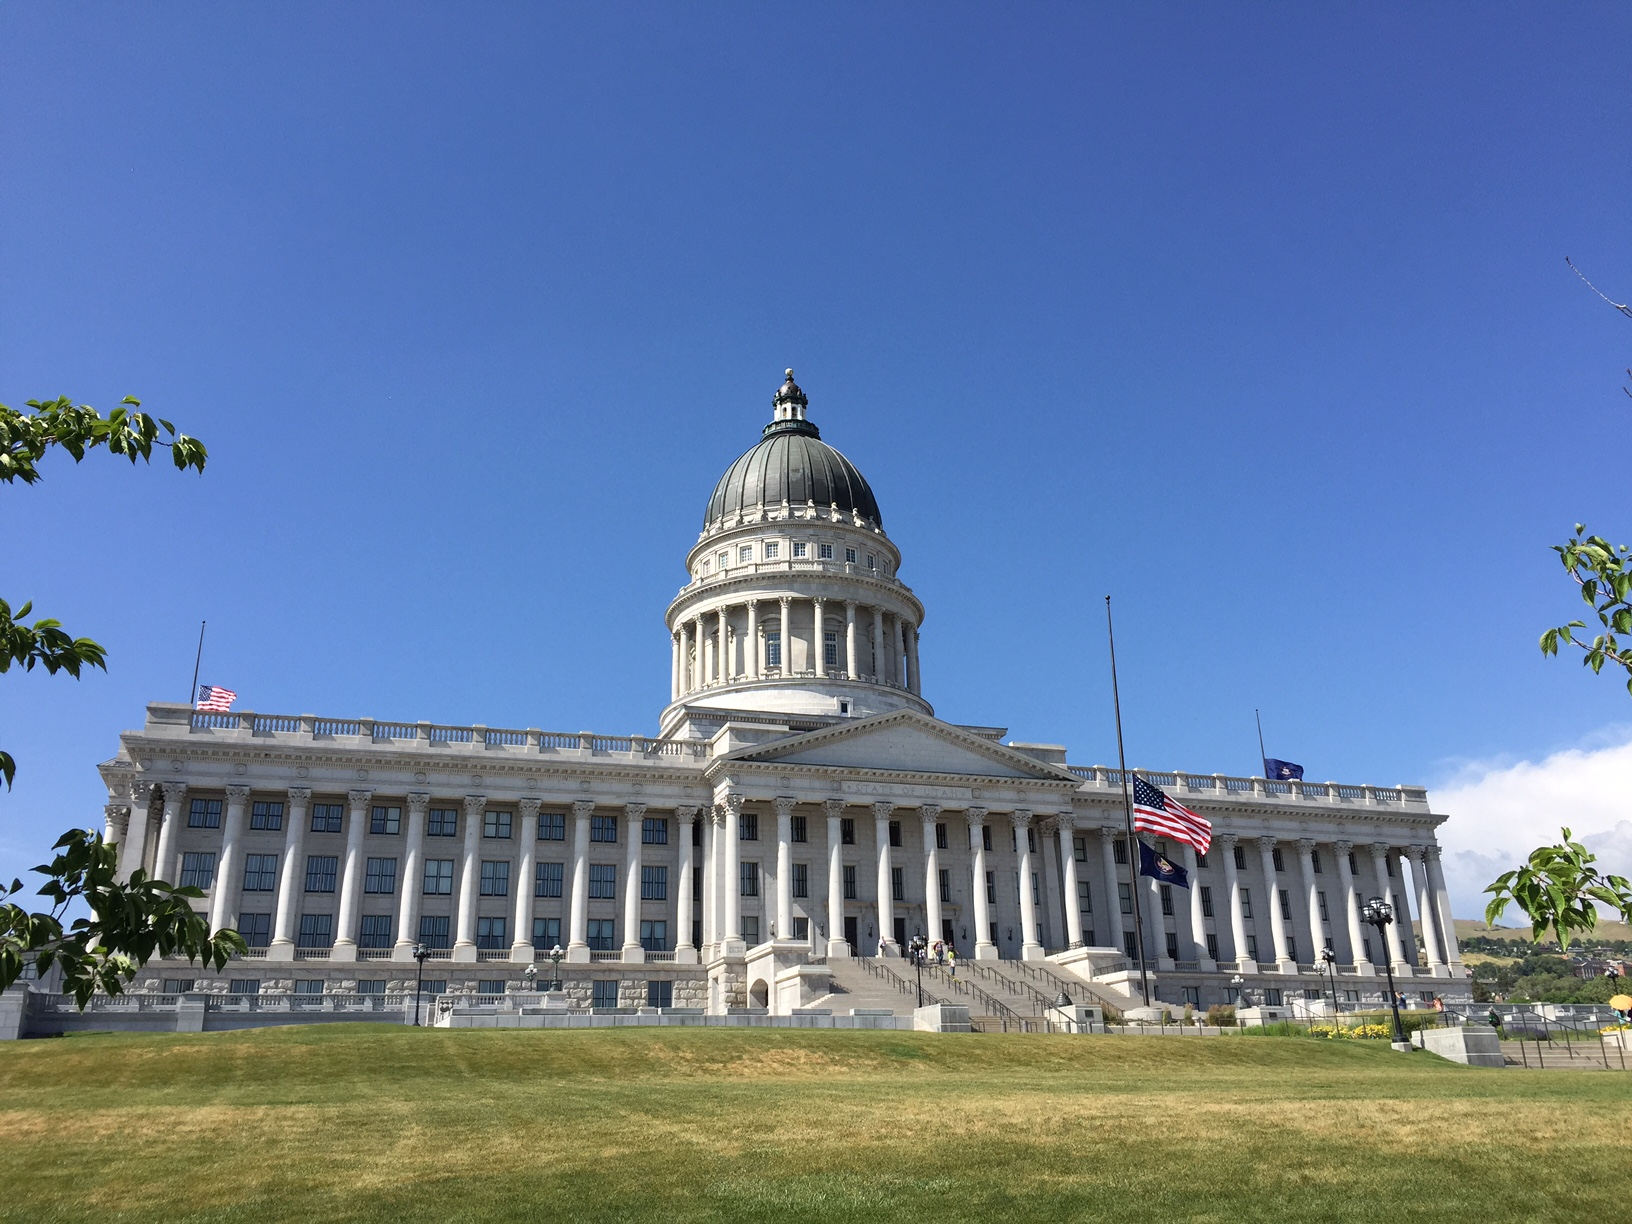 Utah Domestic Violence Coalition (UDVC) Advocacy Day at Utah State Capitol